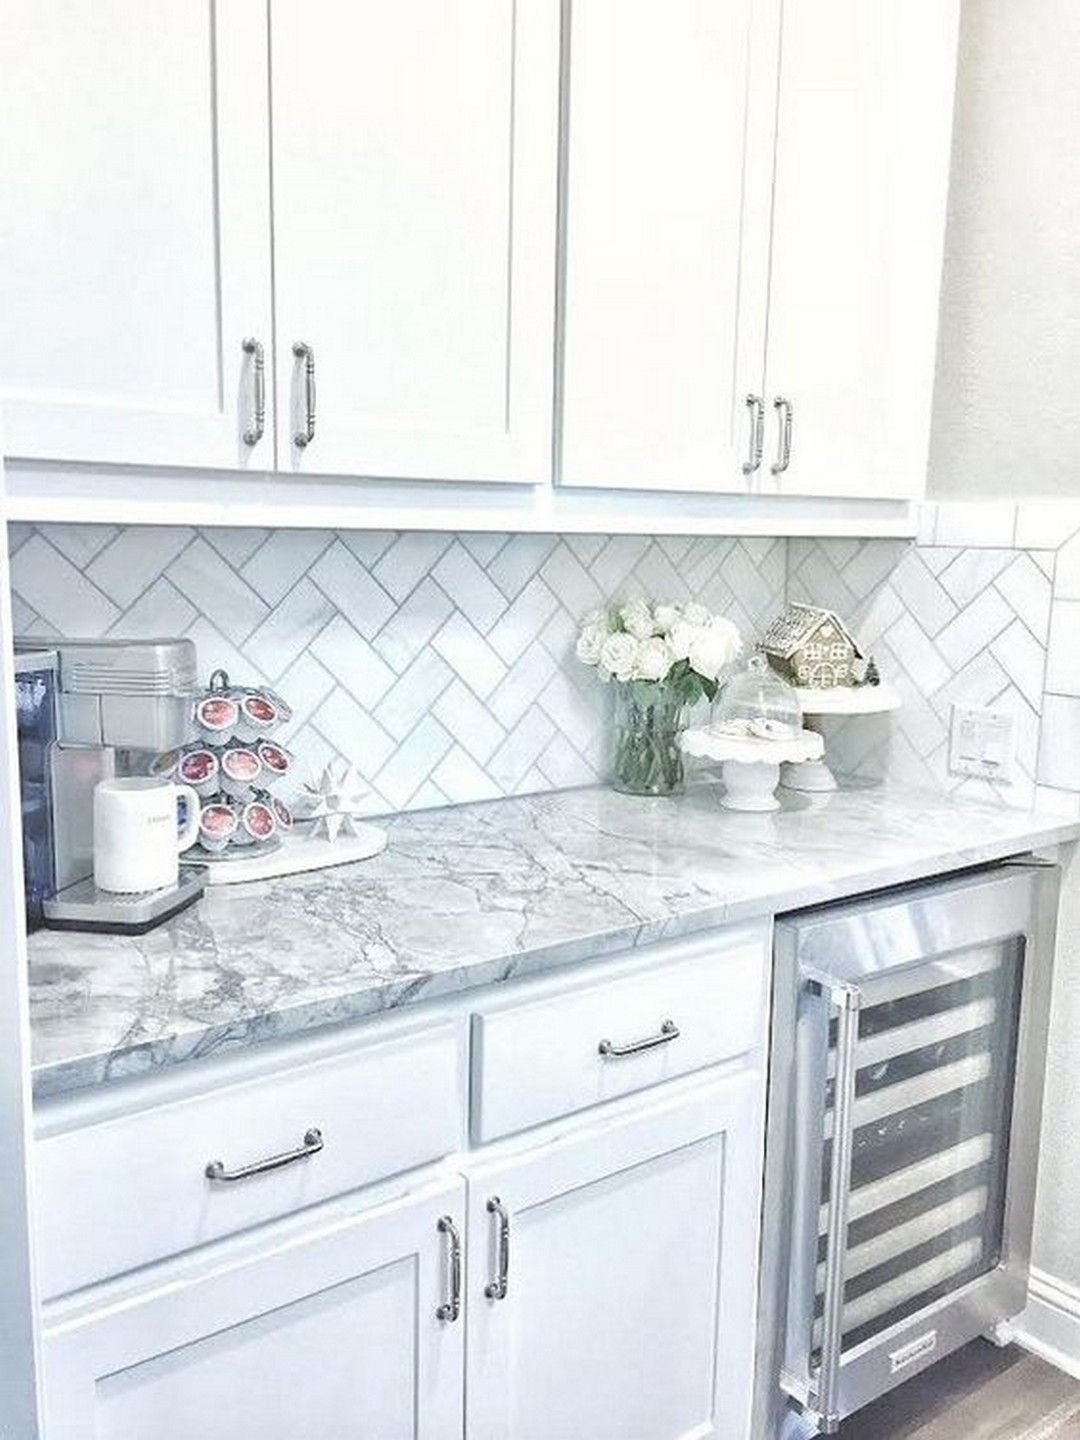 40 Latest Kitchen Backsplash Tile Ideas Kitchen Renovation Cost